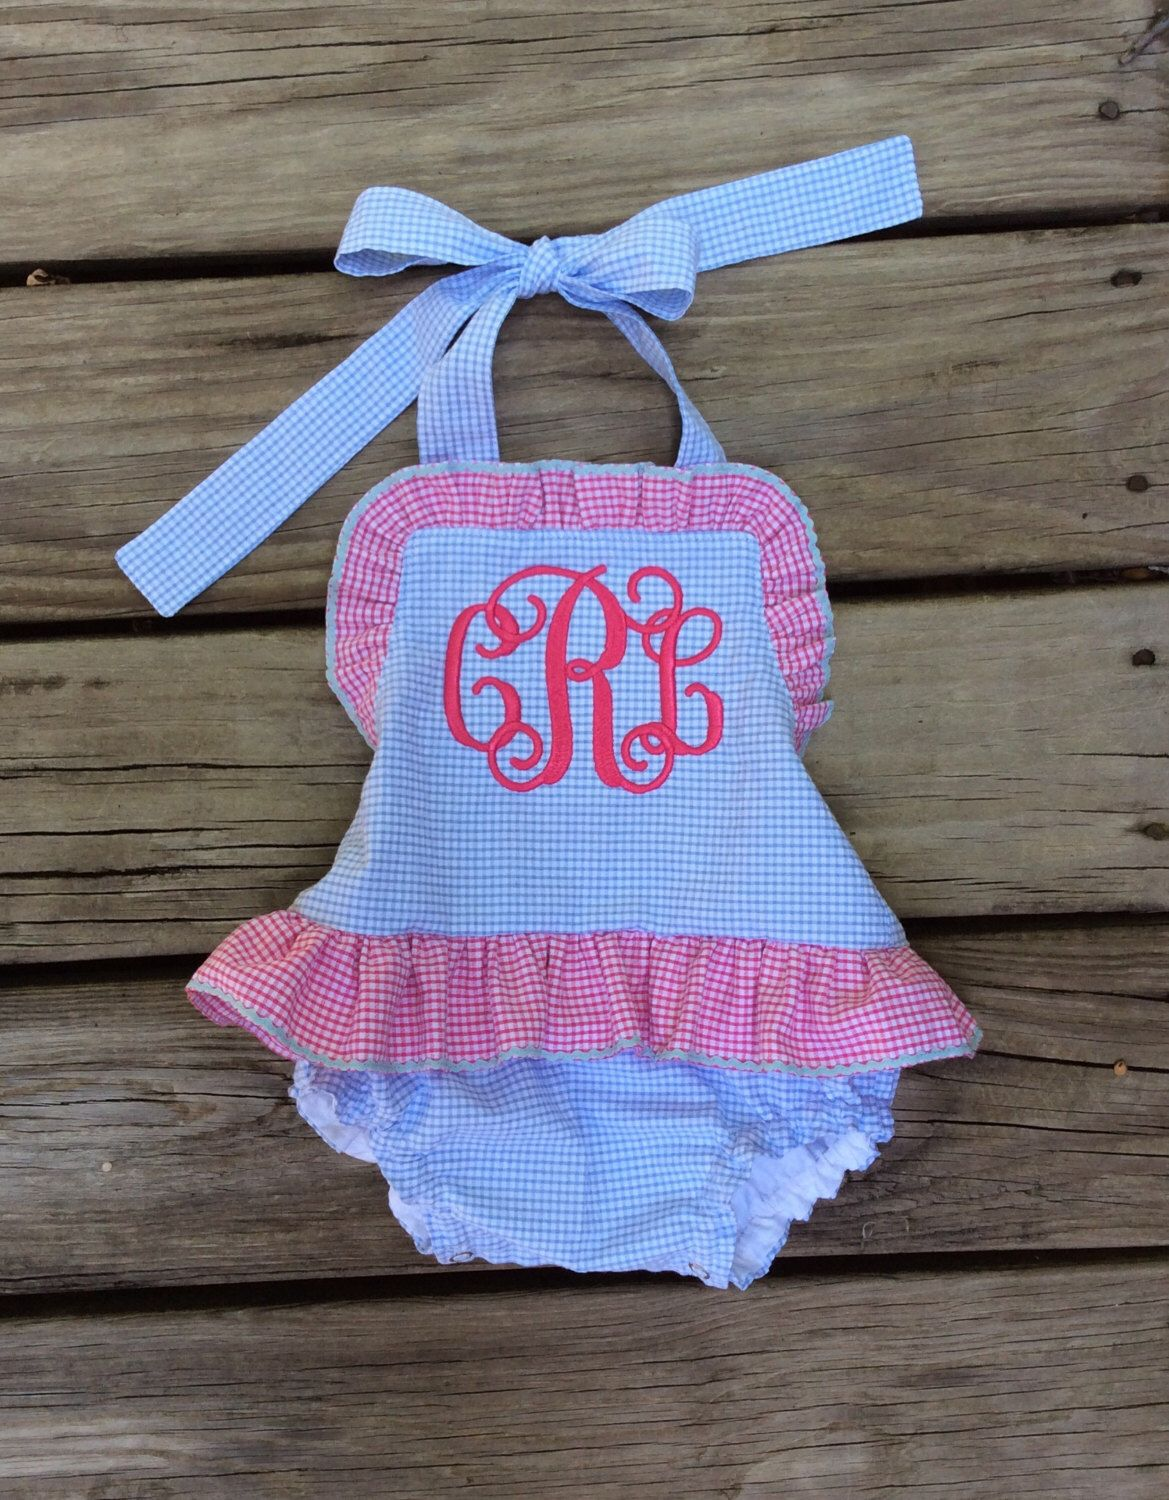 a30249d0ef8 Baby girl monogram One piece ruffle monogram swimsuit Boutique handmade  SNAPS IN CROTCH by waidcreations on